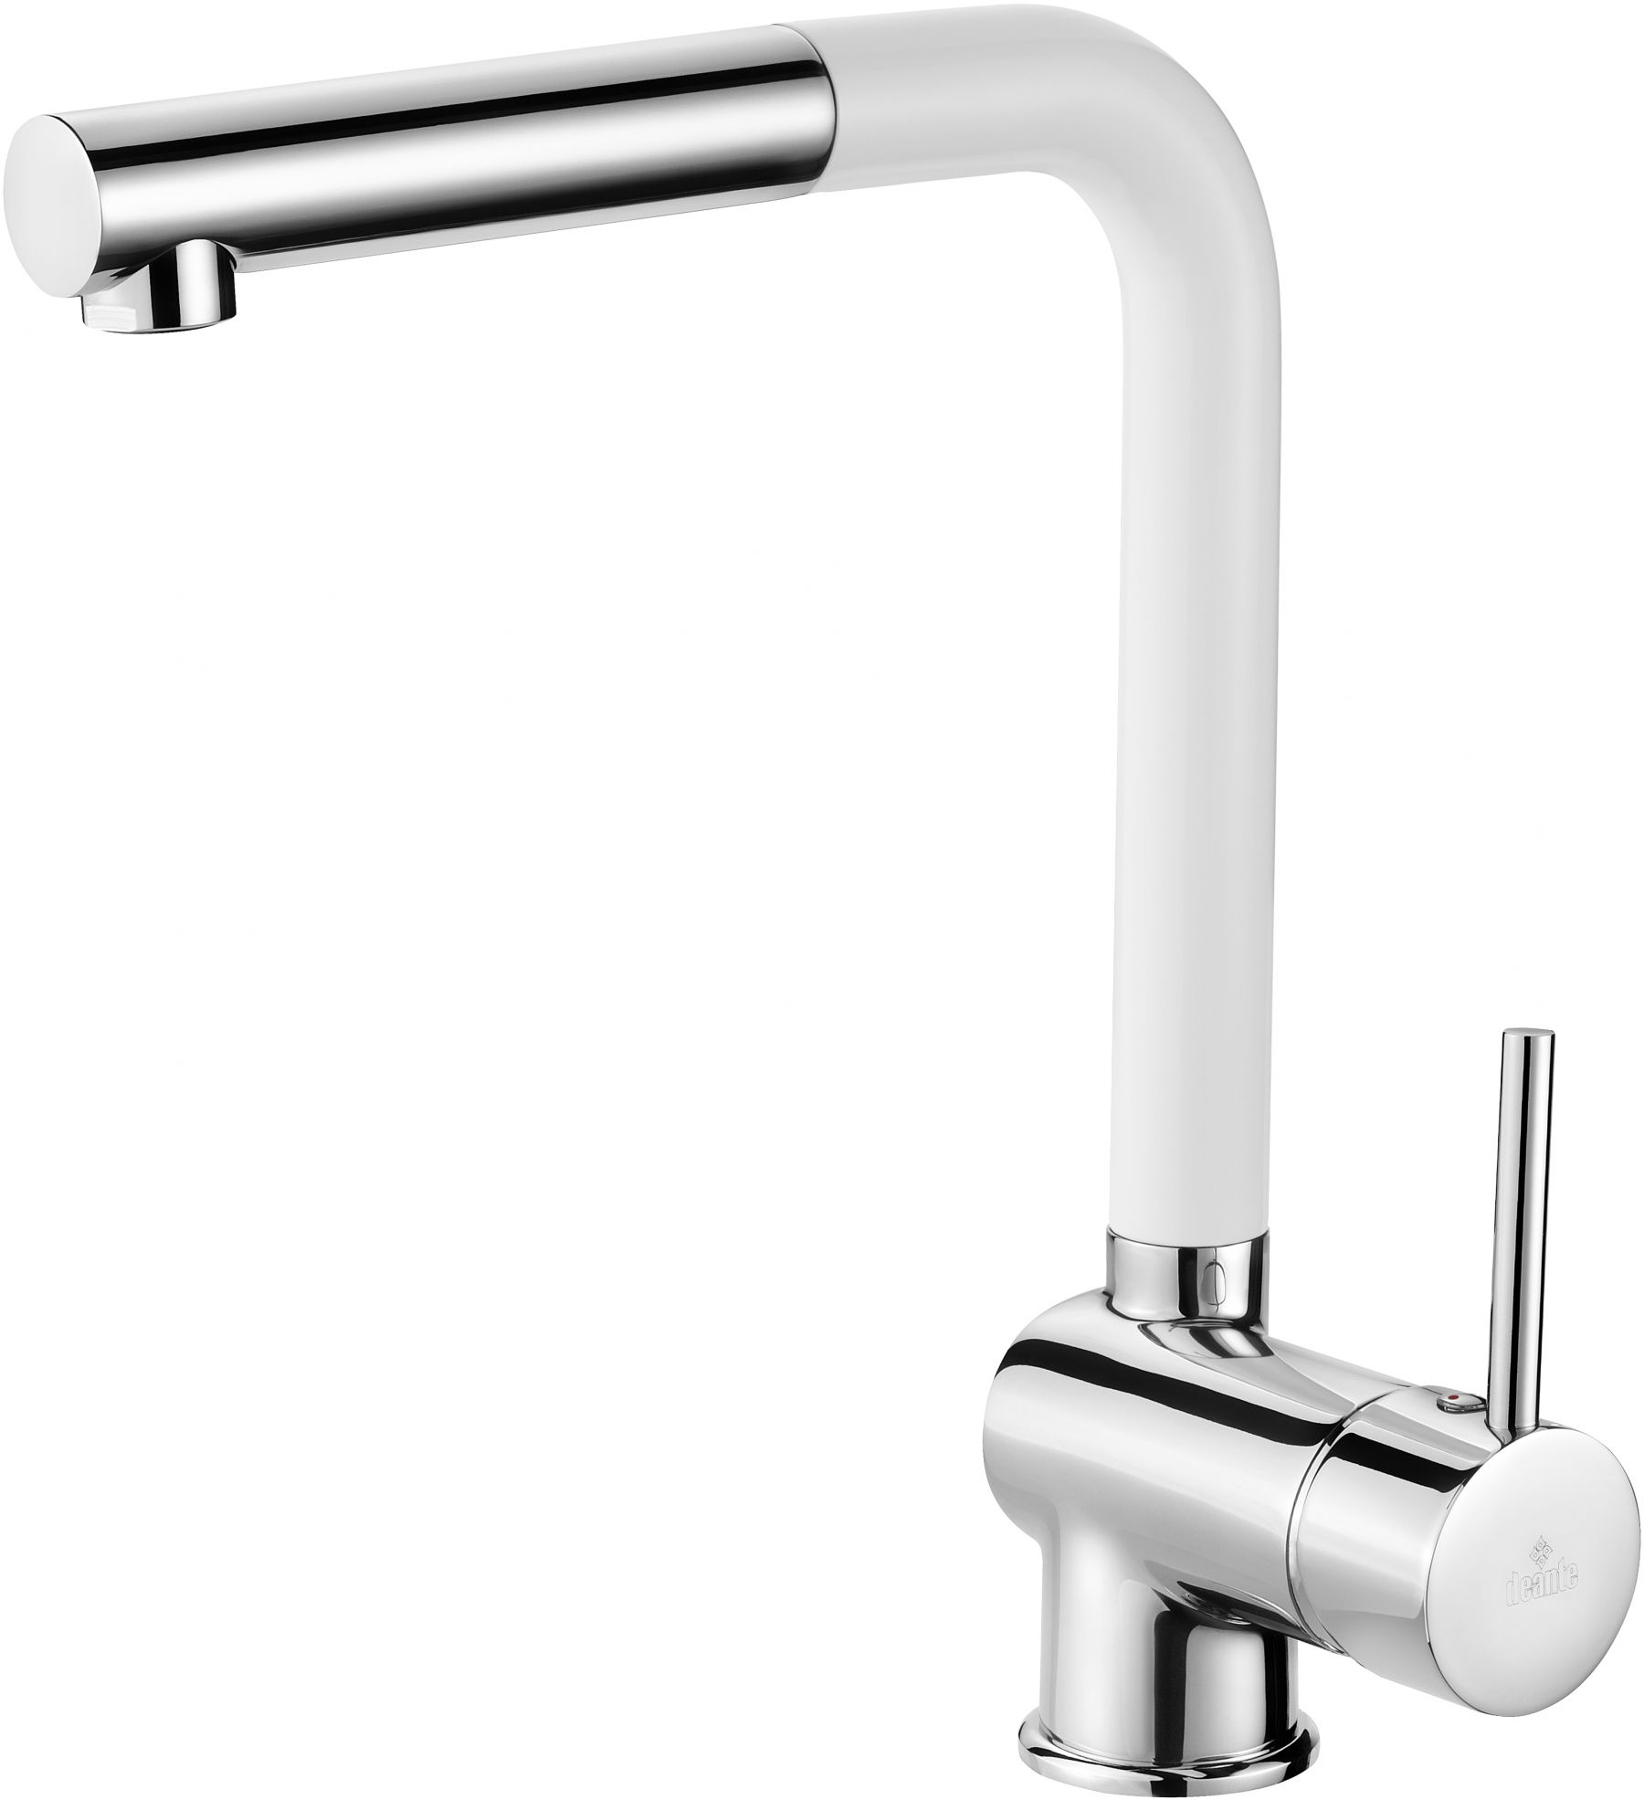 Chrome/White Finish Tap